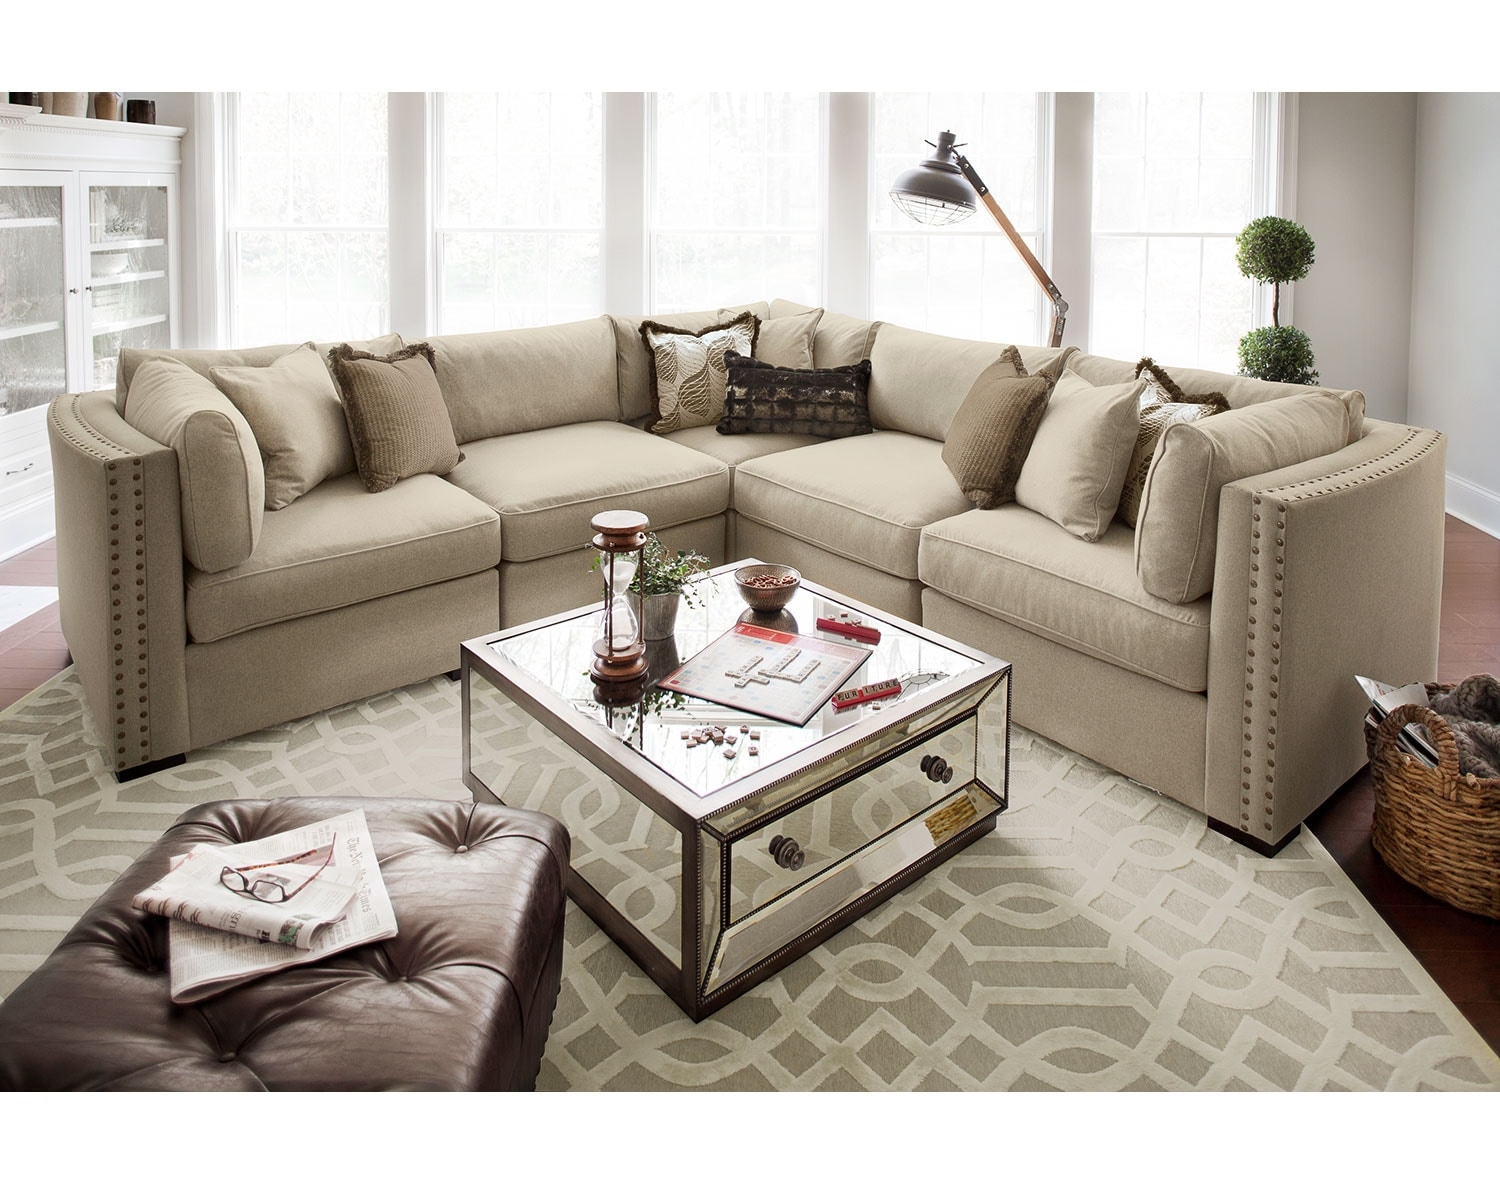 The Athens Living Room Collection